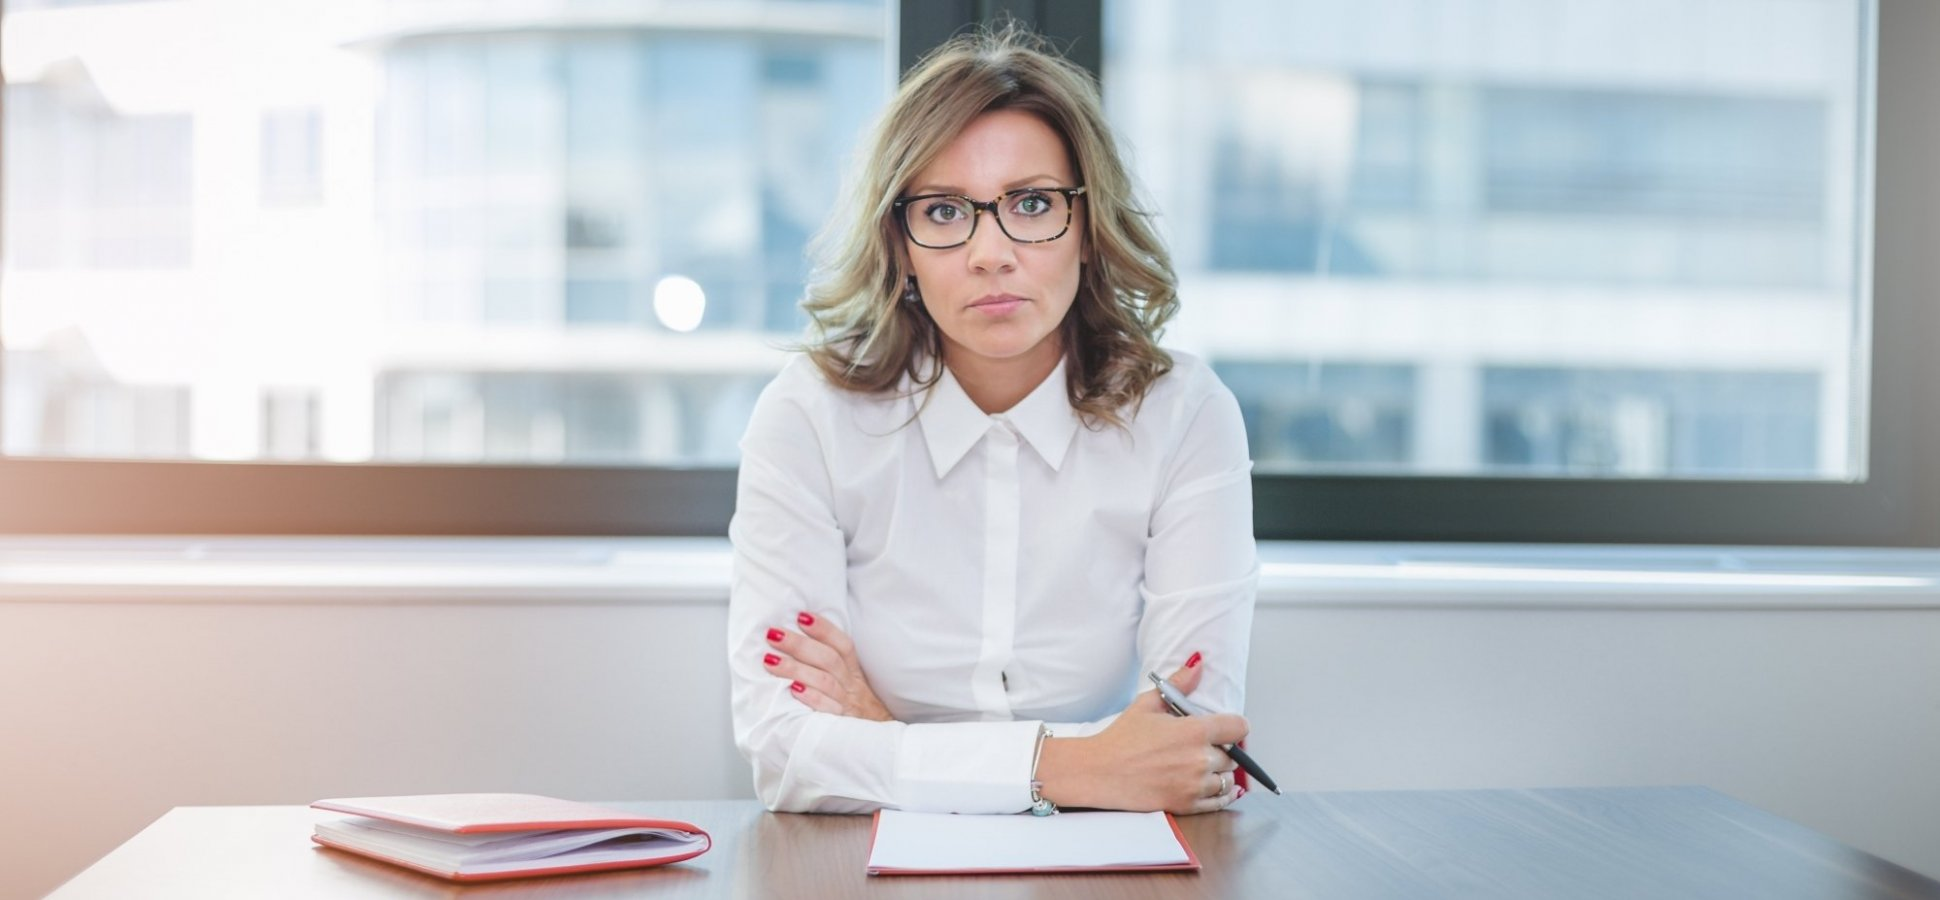 Want to Get Ahead in Your Career? Words You Should Never Use When Negotiating